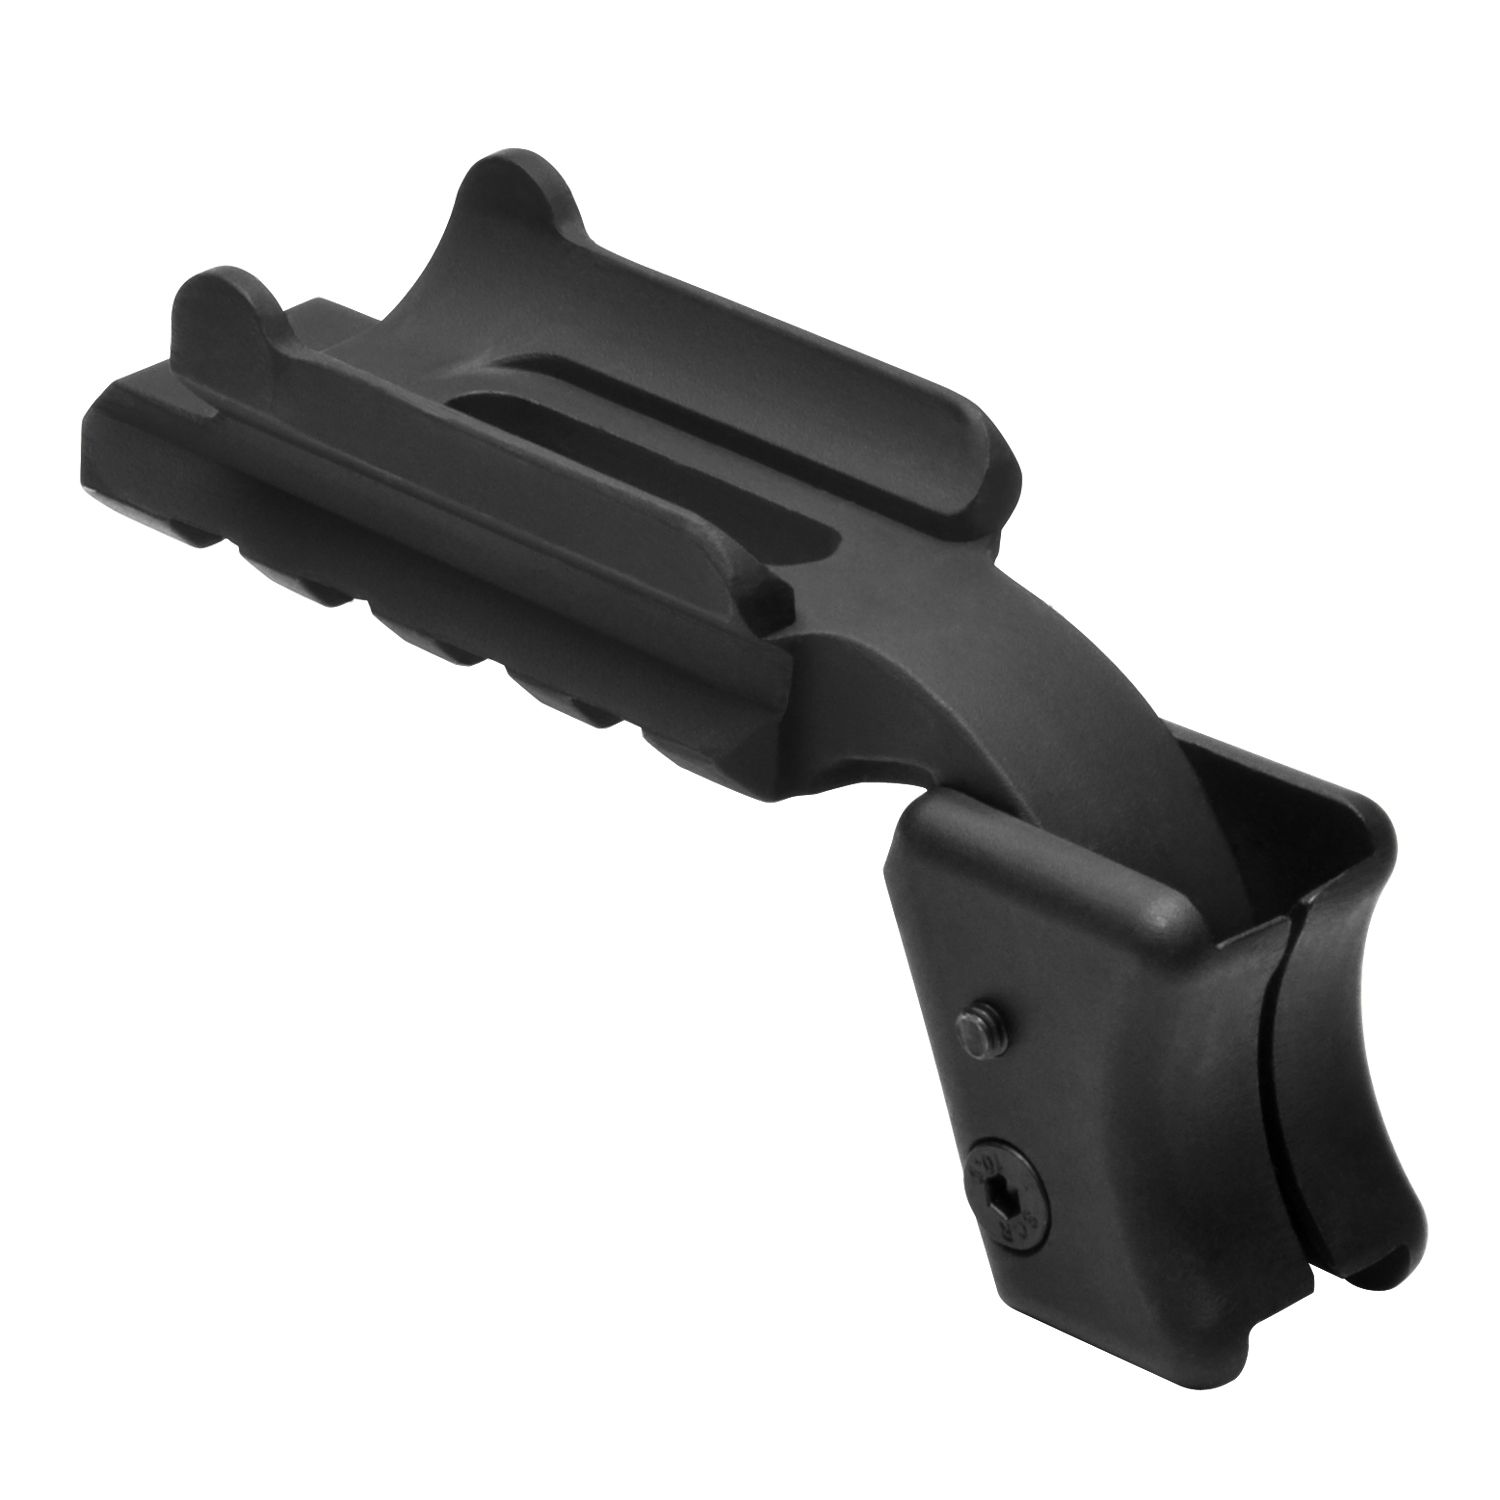 Pistol Accessory Rail Adapter/Beretta 92